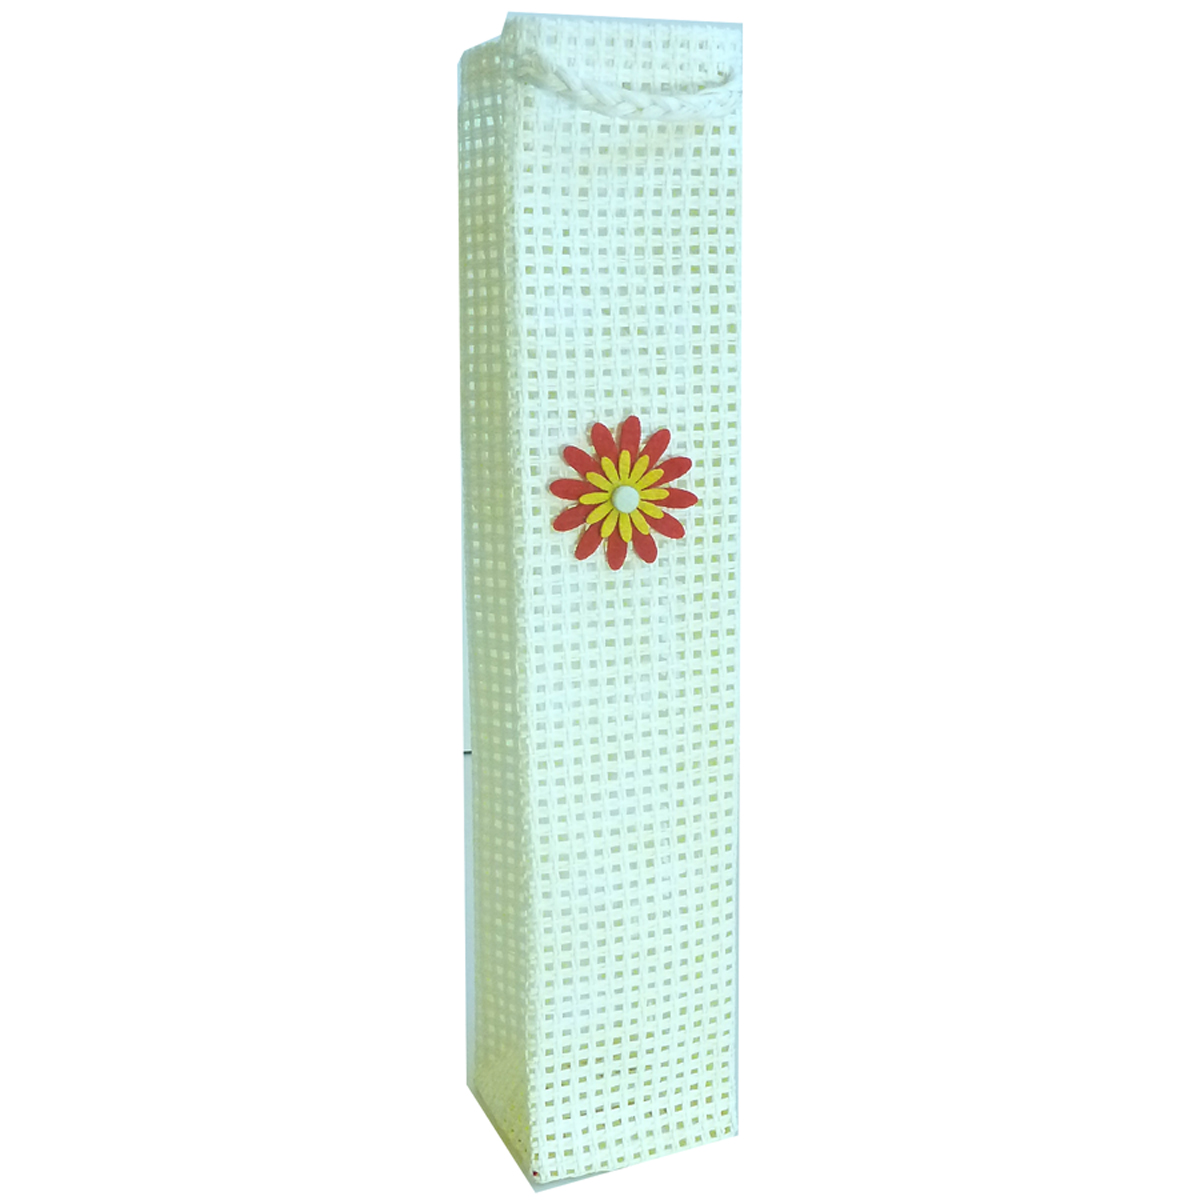 OWP1 White Daisy - Woven Paper Olive Oil Bottle Bags